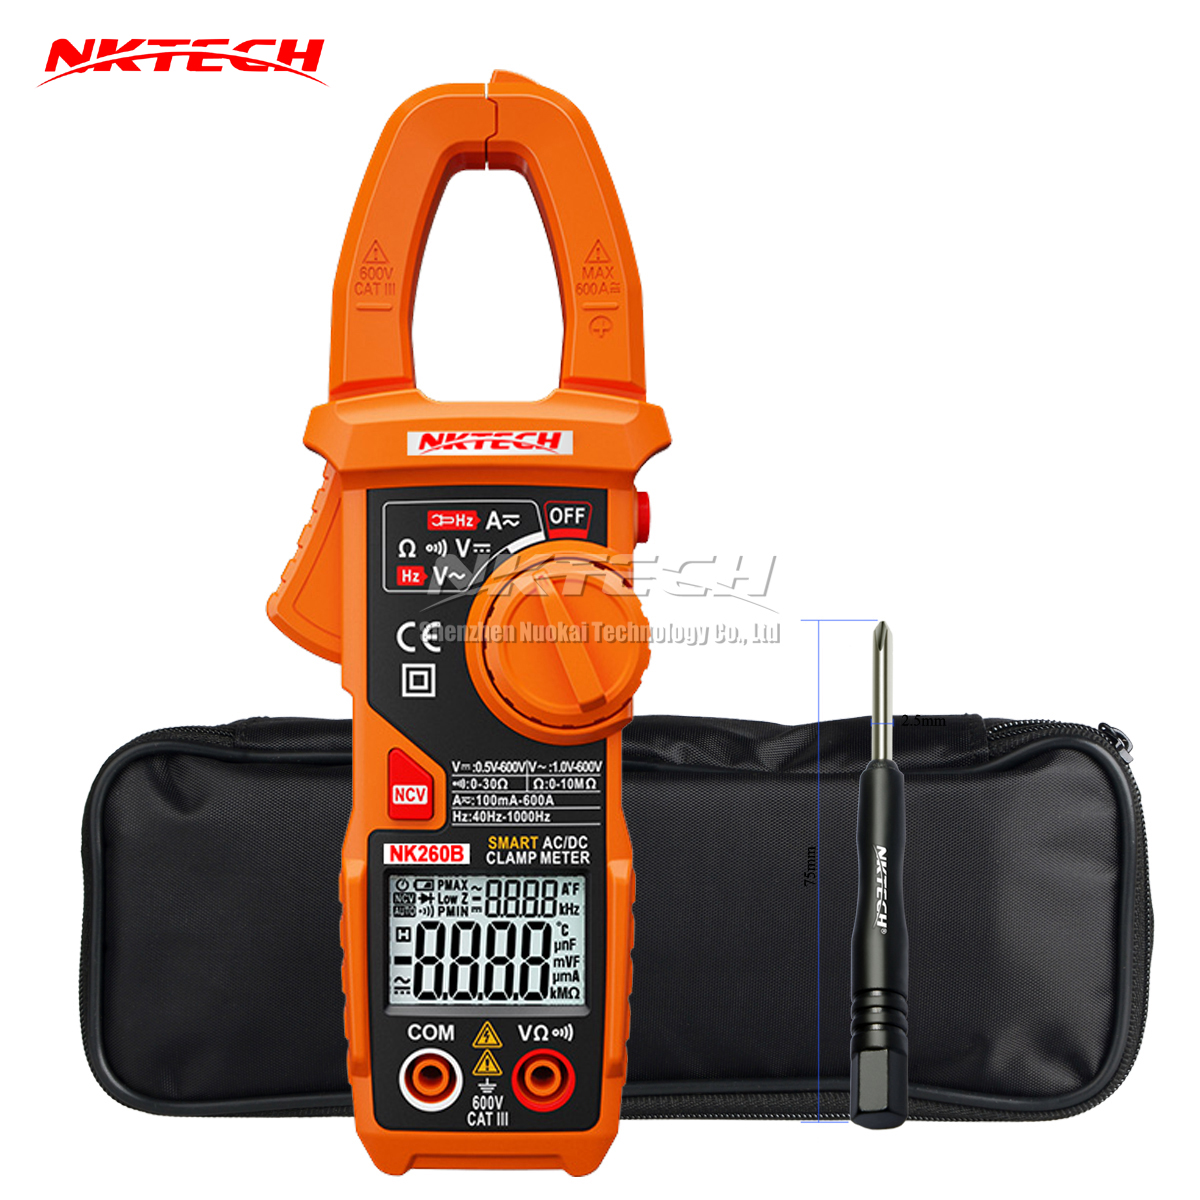 NKTECH NK260B Digital Clamp Meter Smart Auto Range AC DC Voltage Current Resistance Frequency Auto Recognize V/Ohm/A 6000 Counts